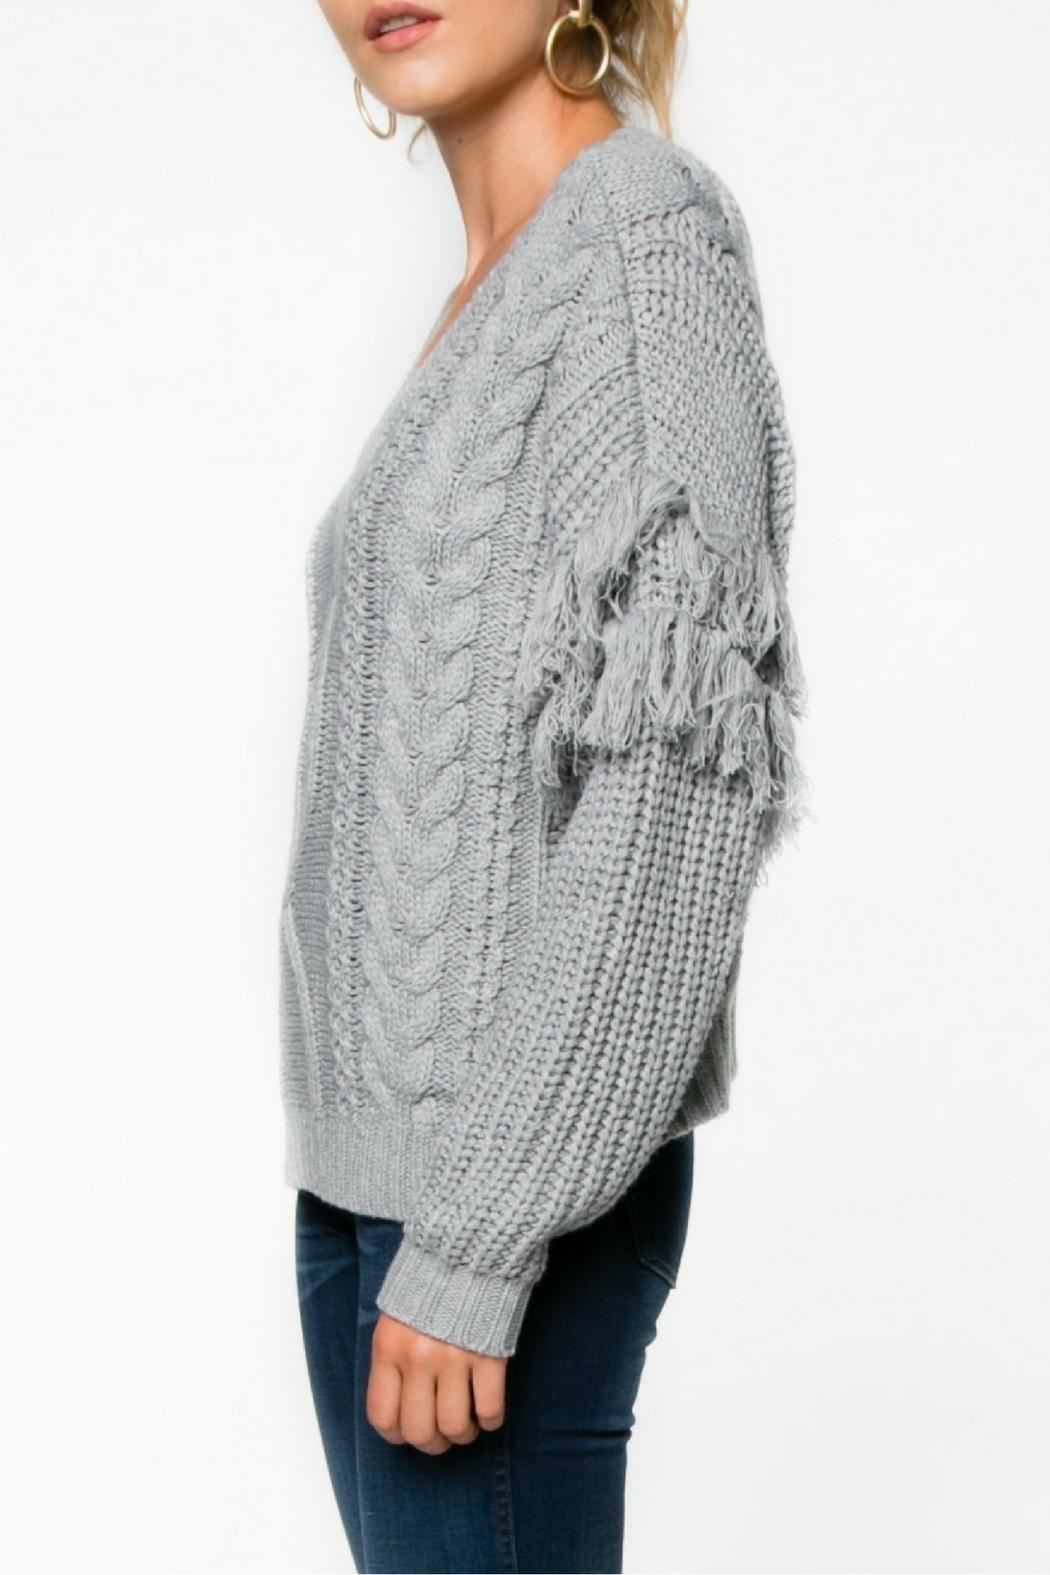 Everly Gray Fringe Sweater - Front Full Image